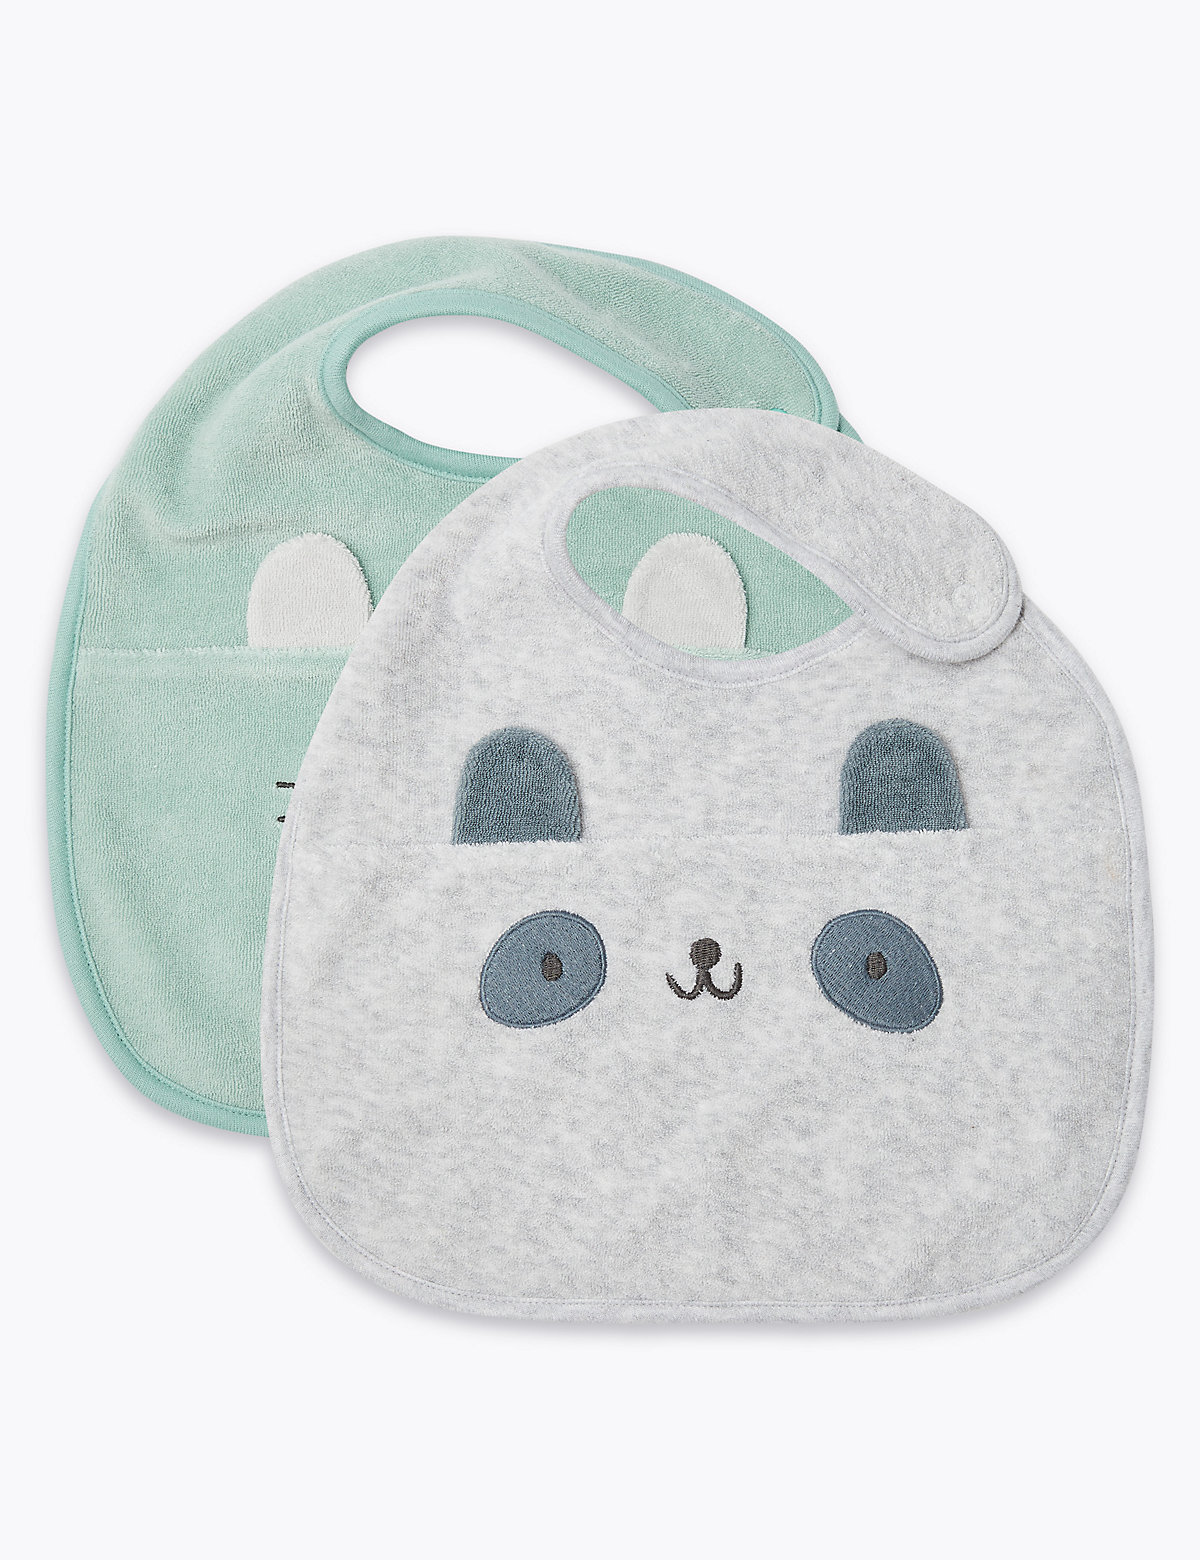 2 Pack Animal Face Bibs